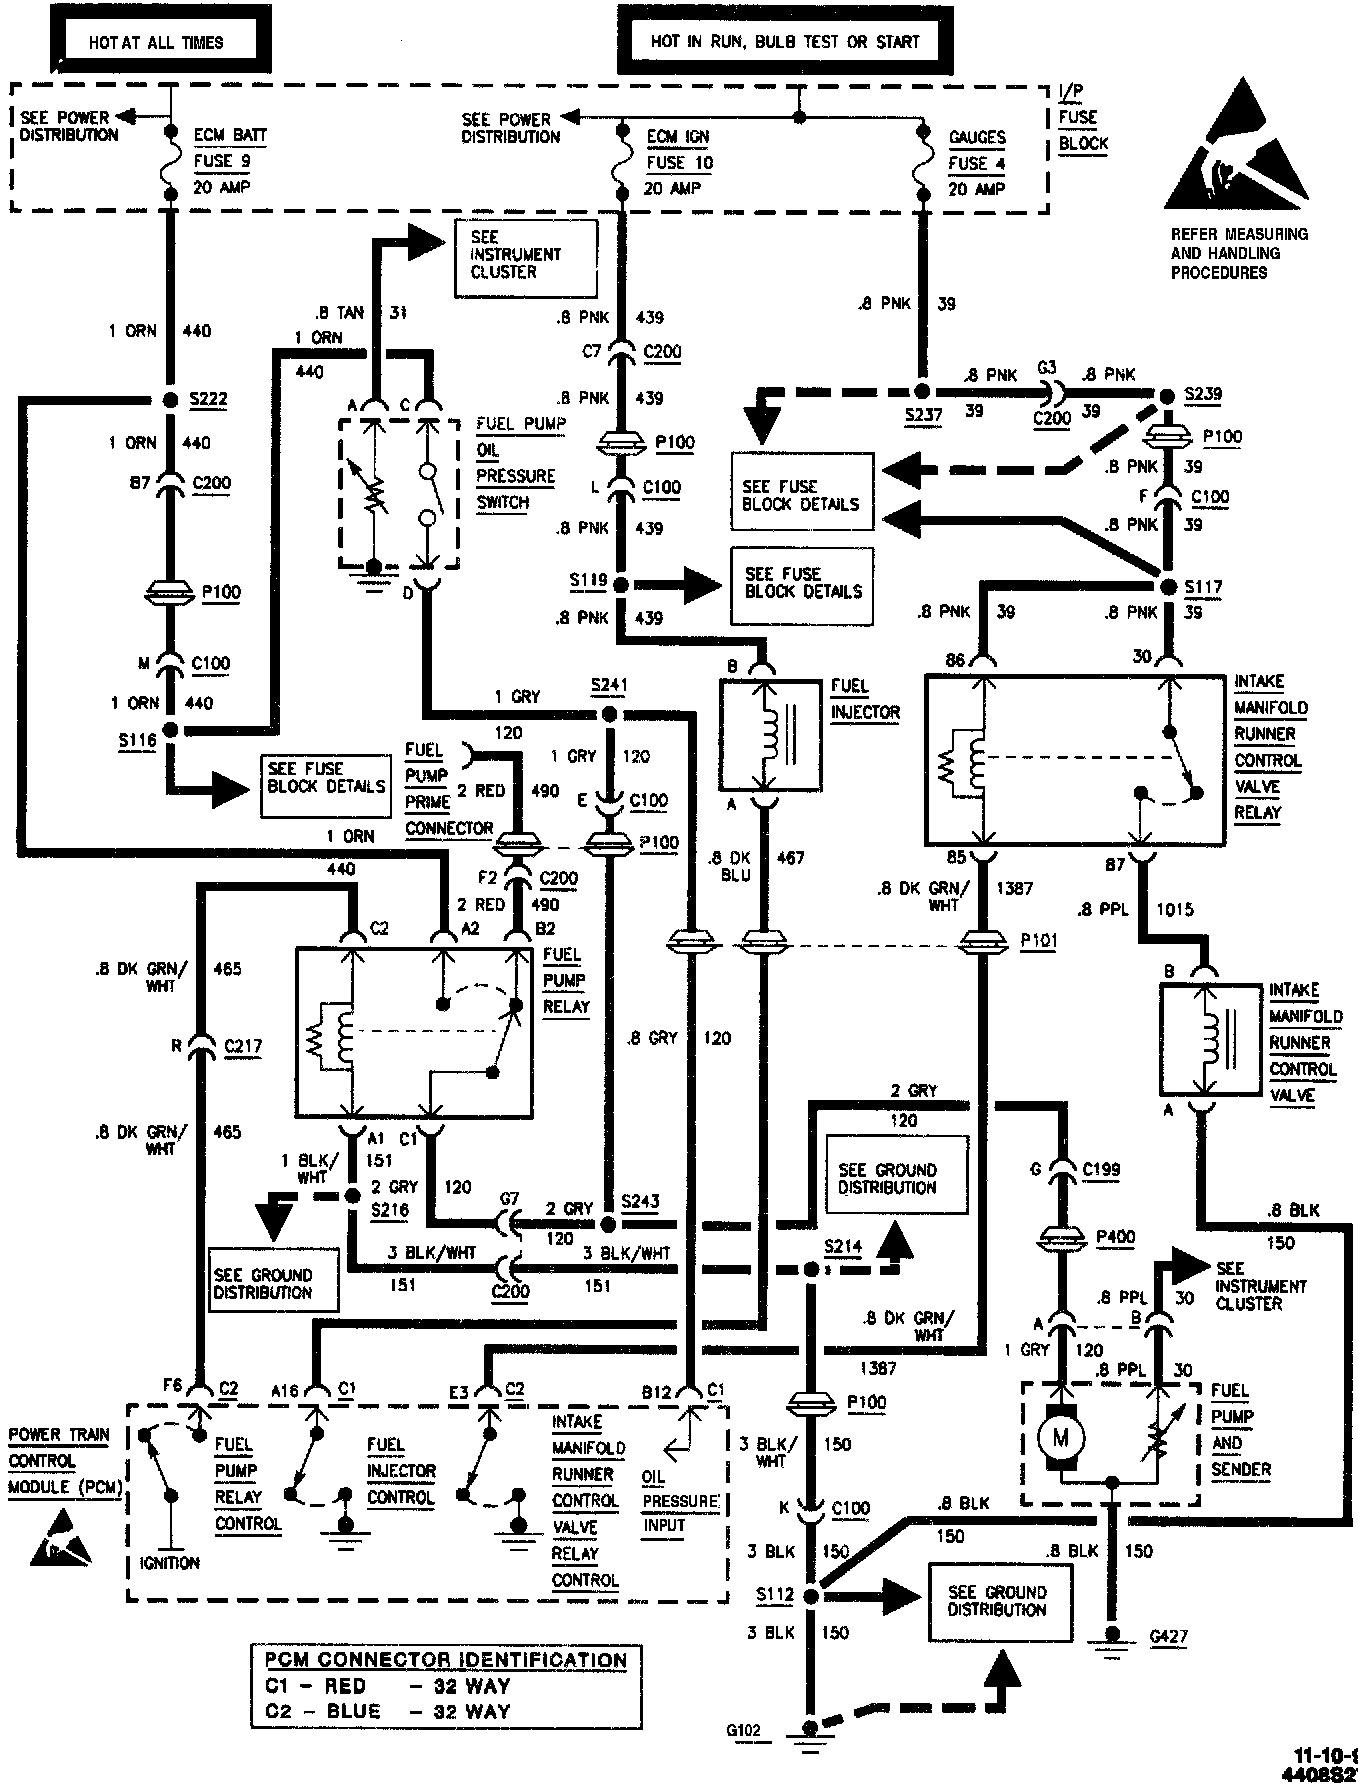 E827 97 Gmc Van Wiring Diagram Stereo | Wiring ResourcesWiring Resources